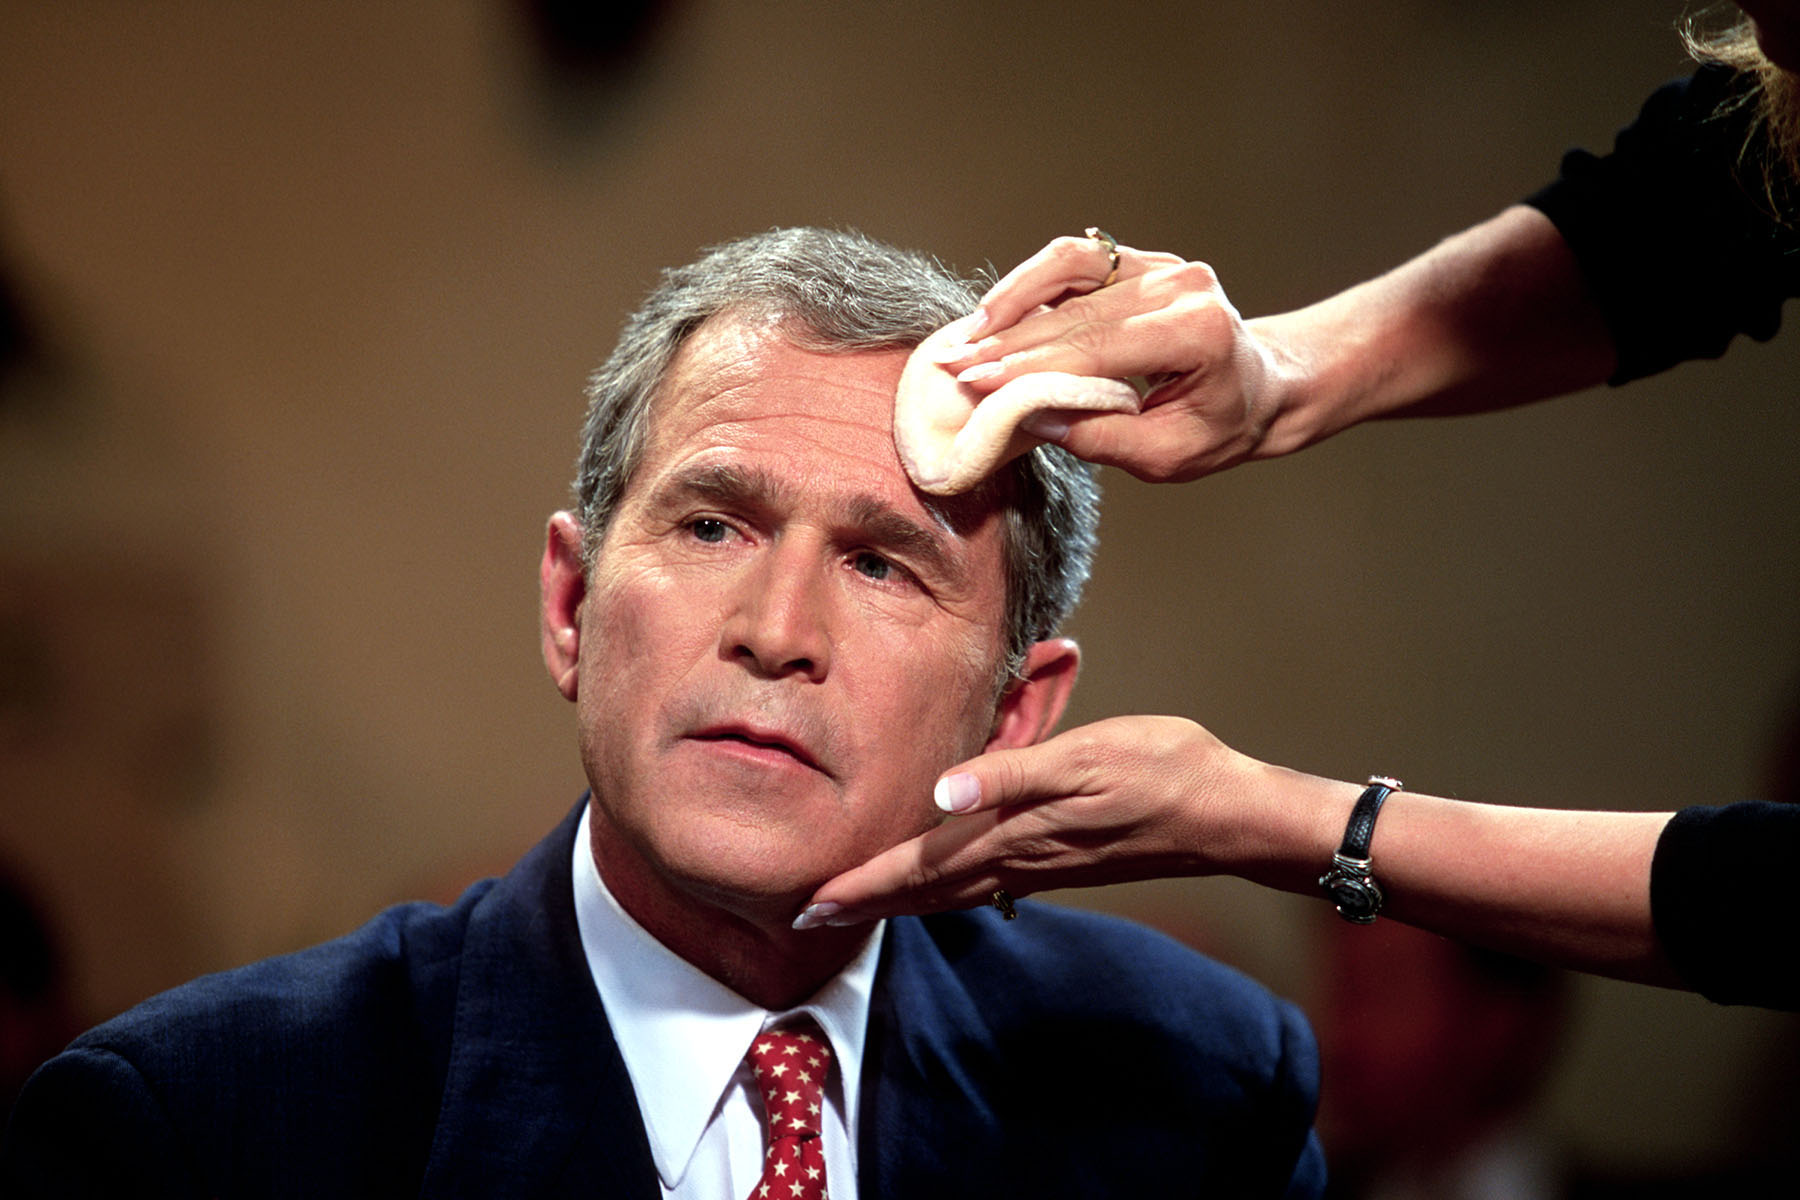 Republican presidential candidate George W Bush gets make up put on before a television interview.